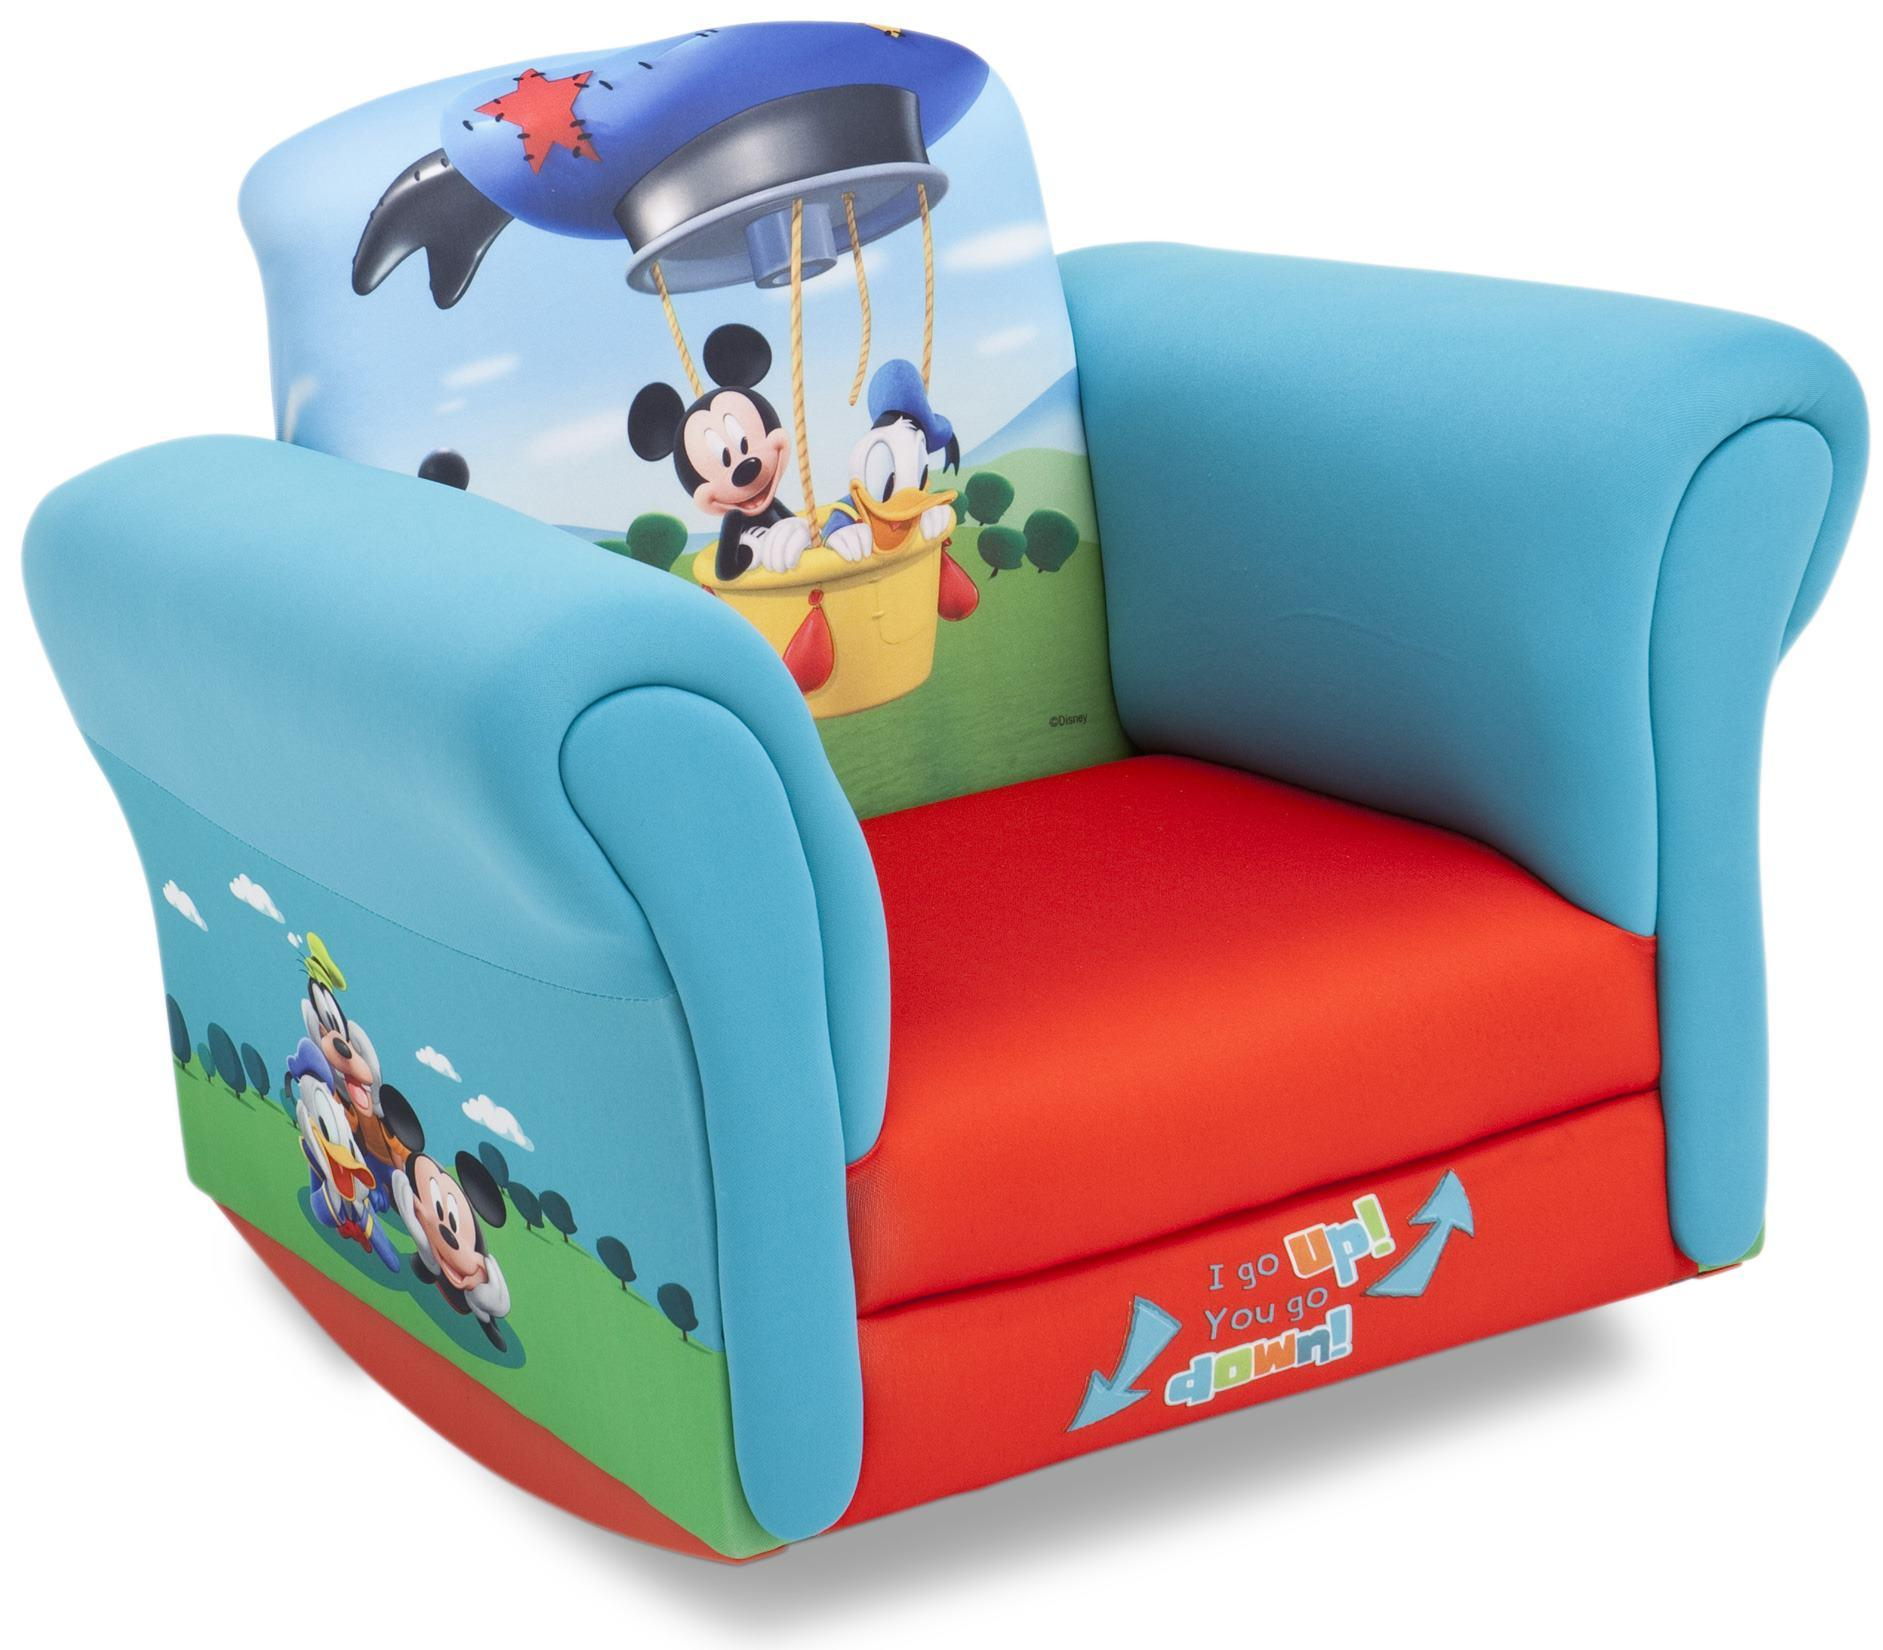 Toddler Rocker Chair Delta Upholstered Child 39s Mickey Mouse Rocking Chair Kmart